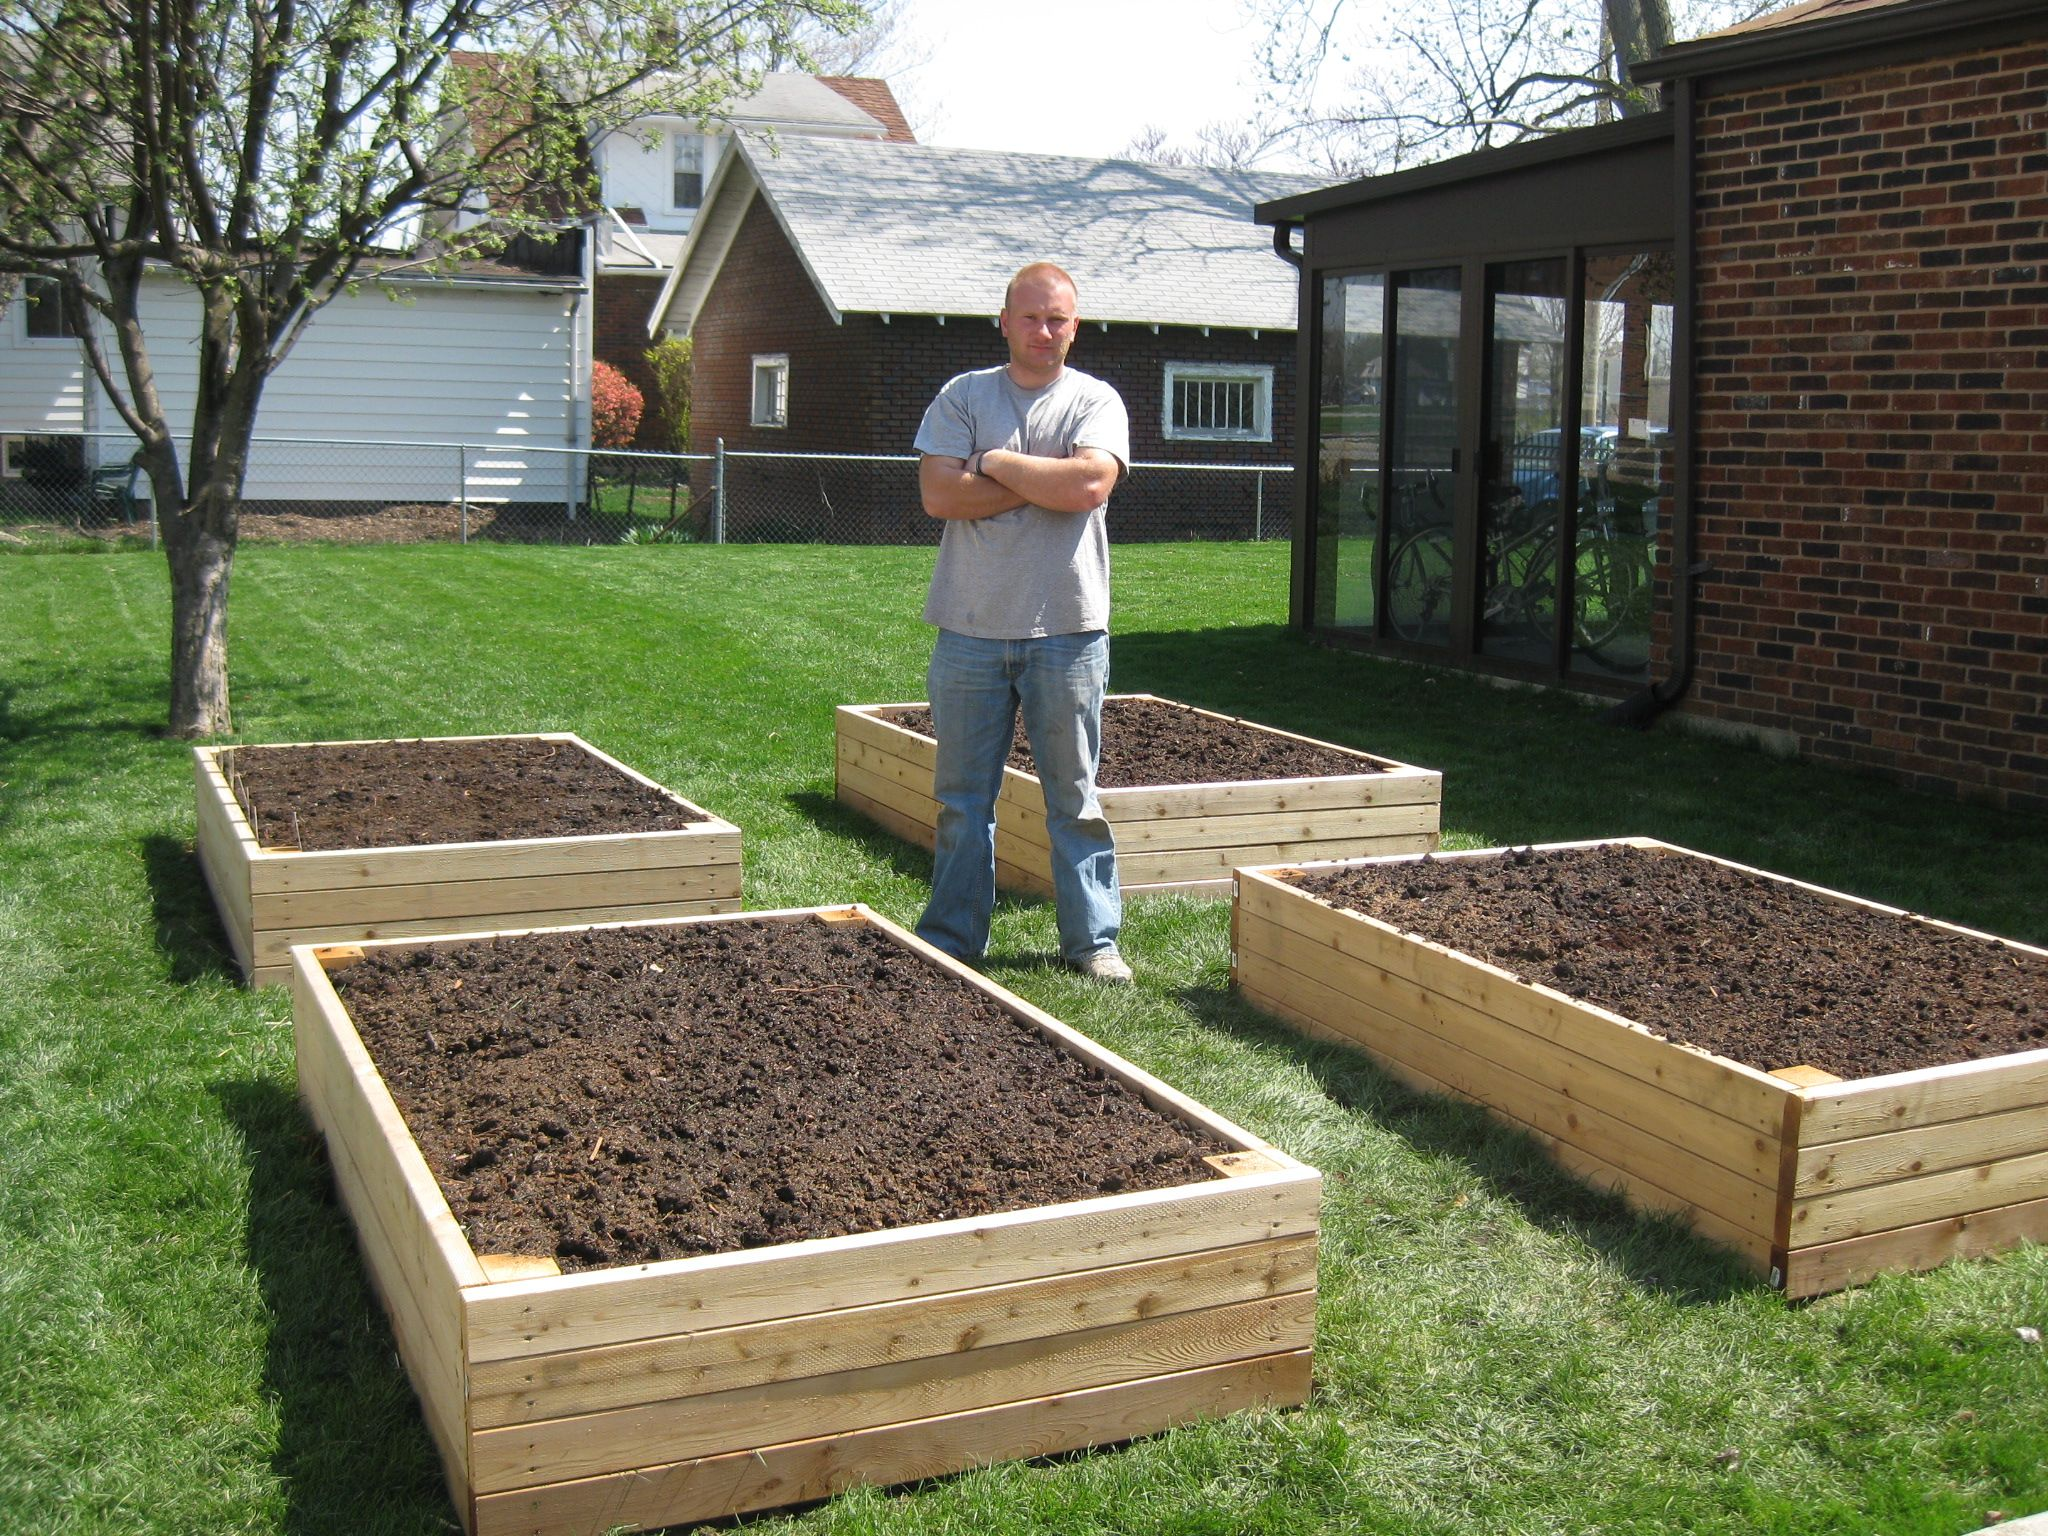 Making above ground garden beds - Bp Builds Four Raised Garden Beds